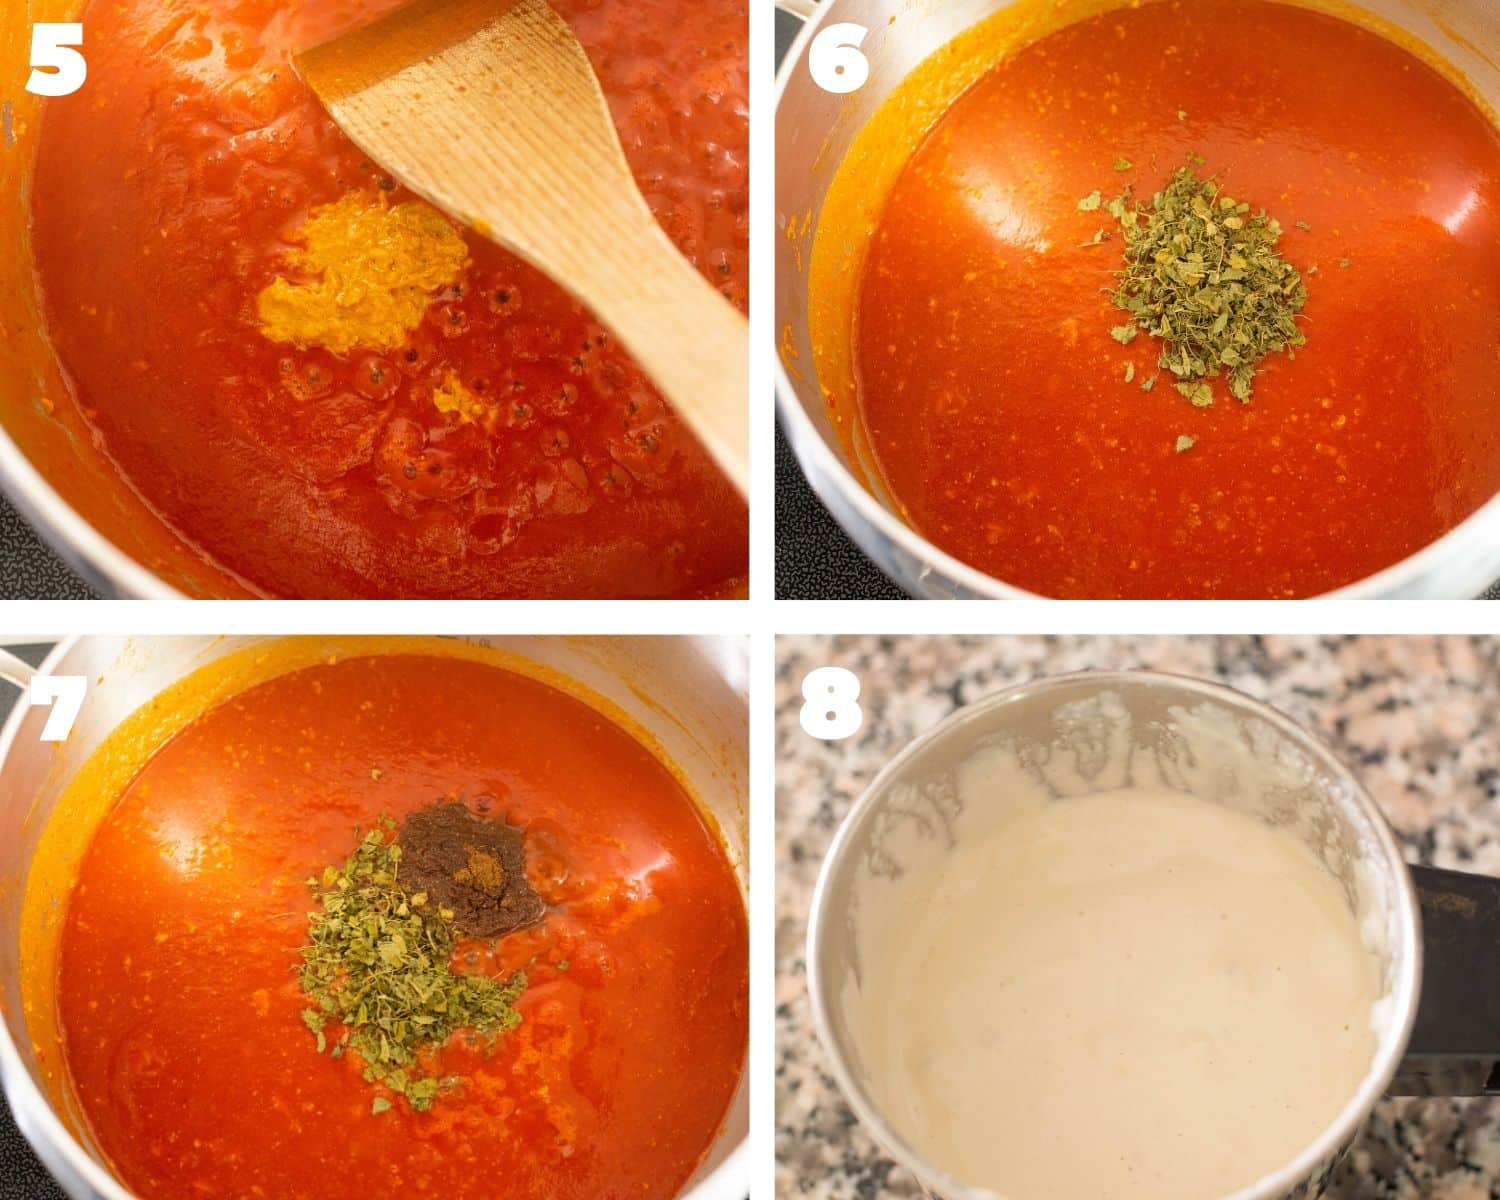 Butter chicken sauce being made on the stovetop